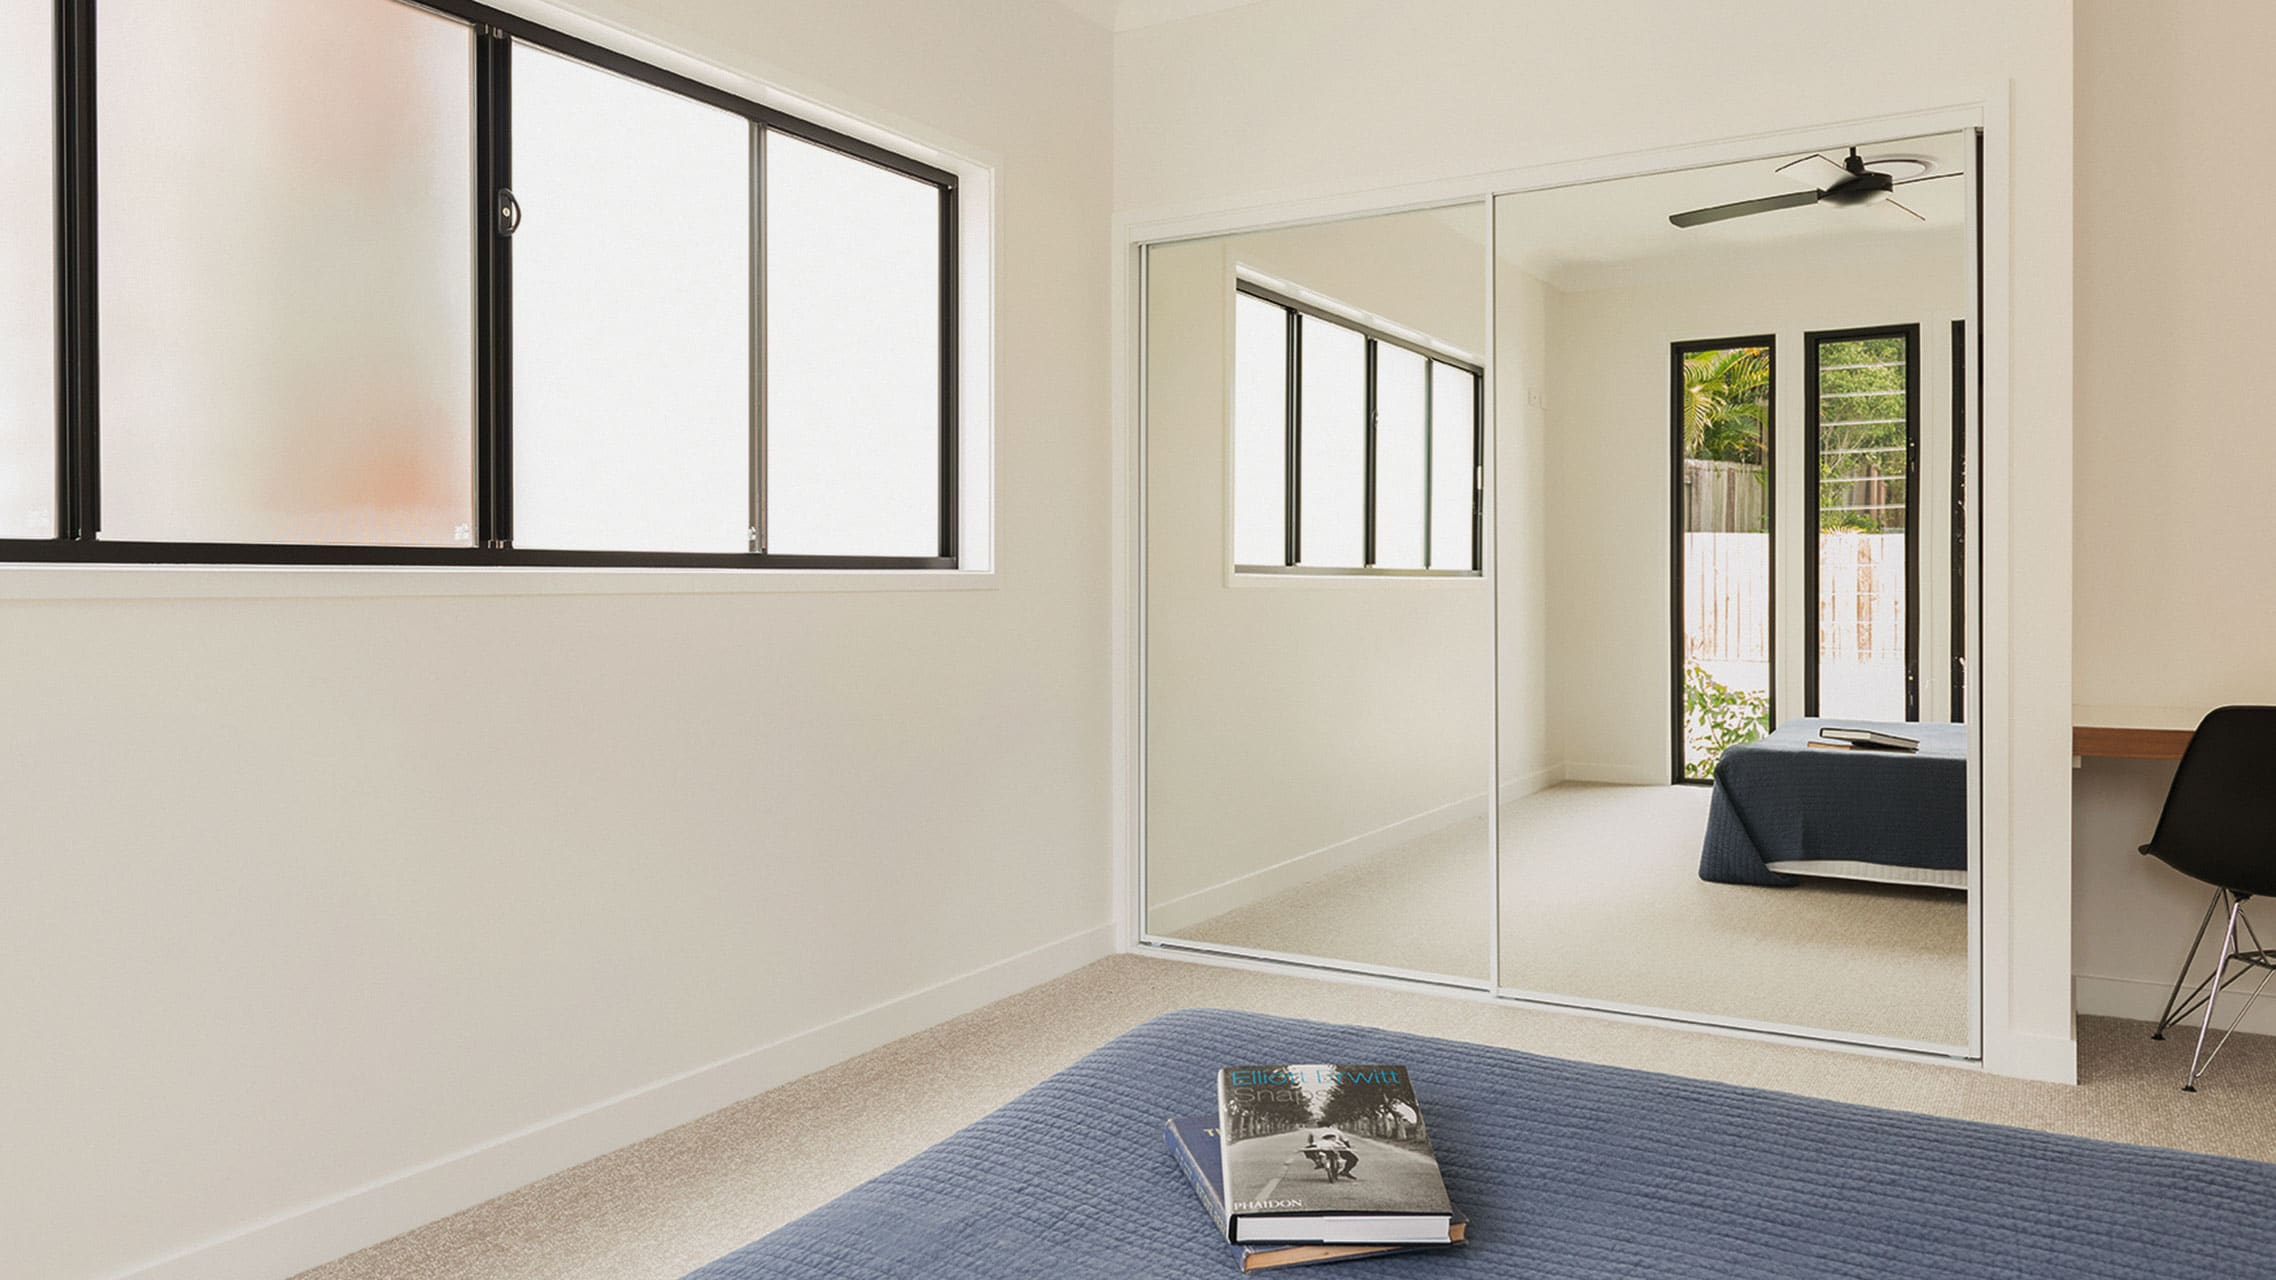 Black Aluminium Sliding Windows with obscure glass